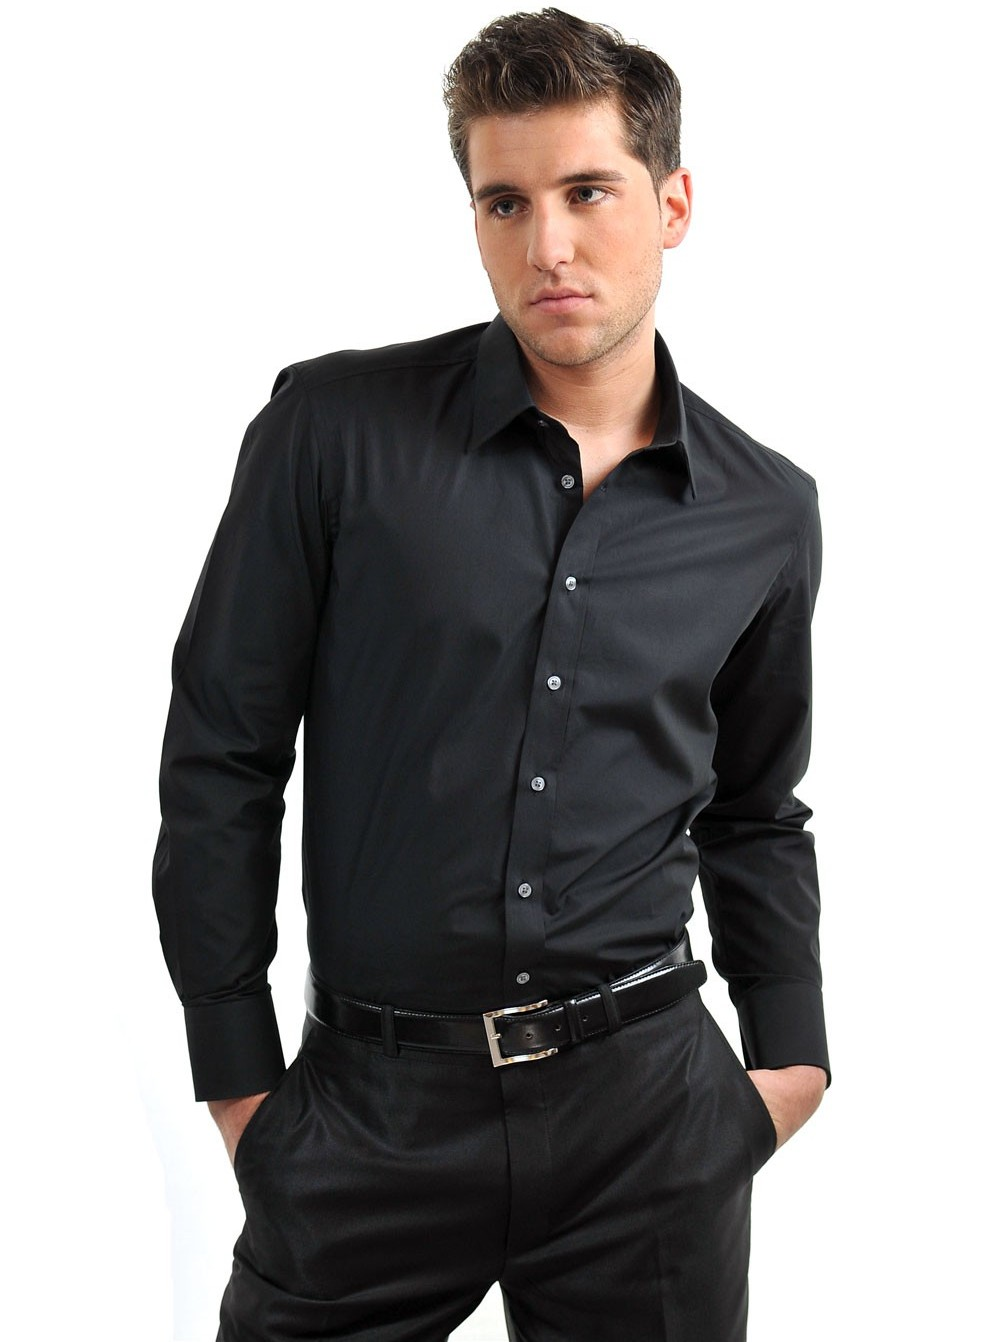 black-shirt-for-mendress-shirt-men---black---dress-shirts---cp-men-247ebasl